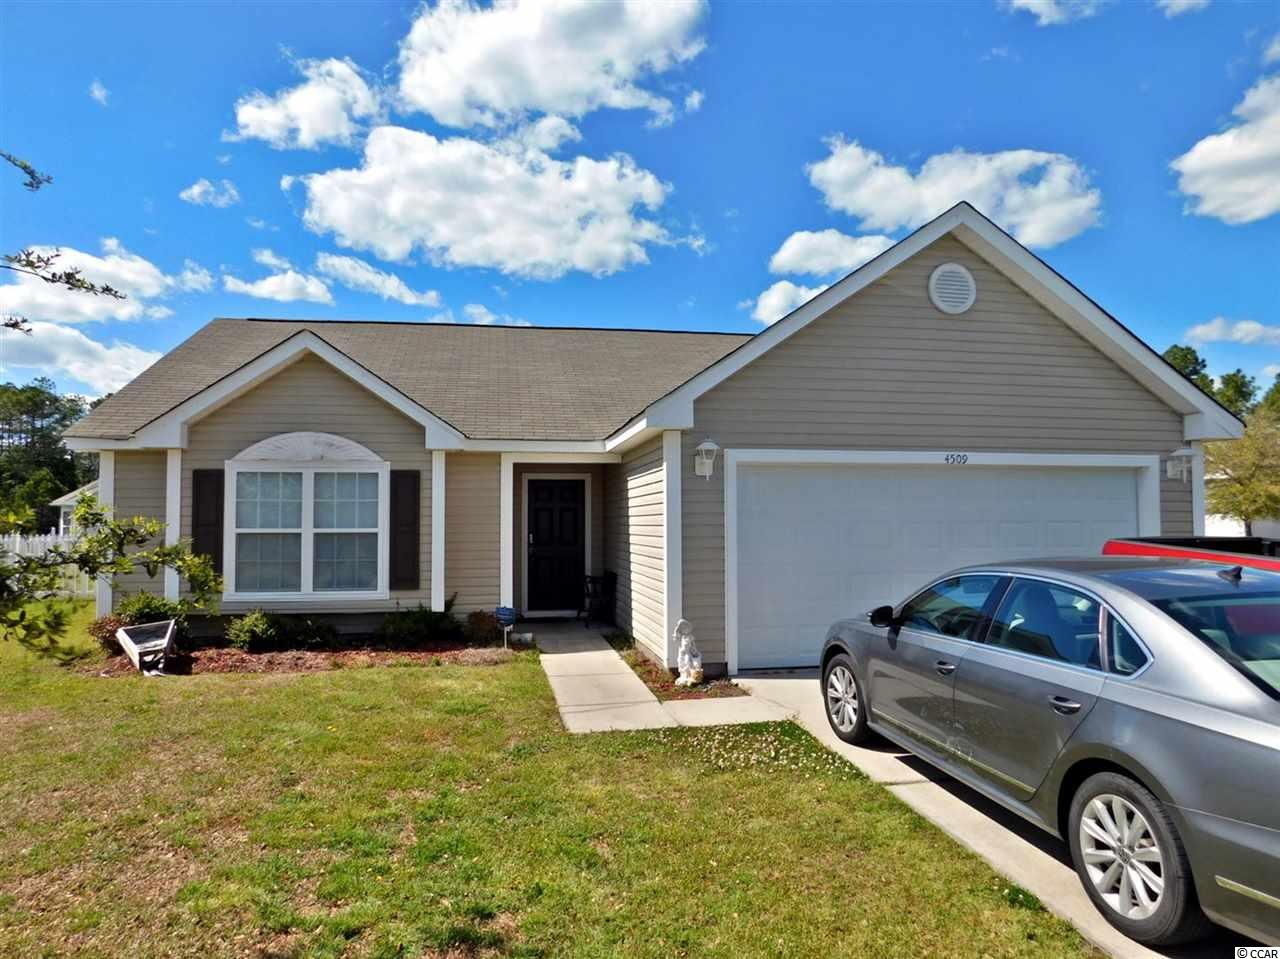 4509 E Walkerton Rd, Myrtle Beach, SC 29579